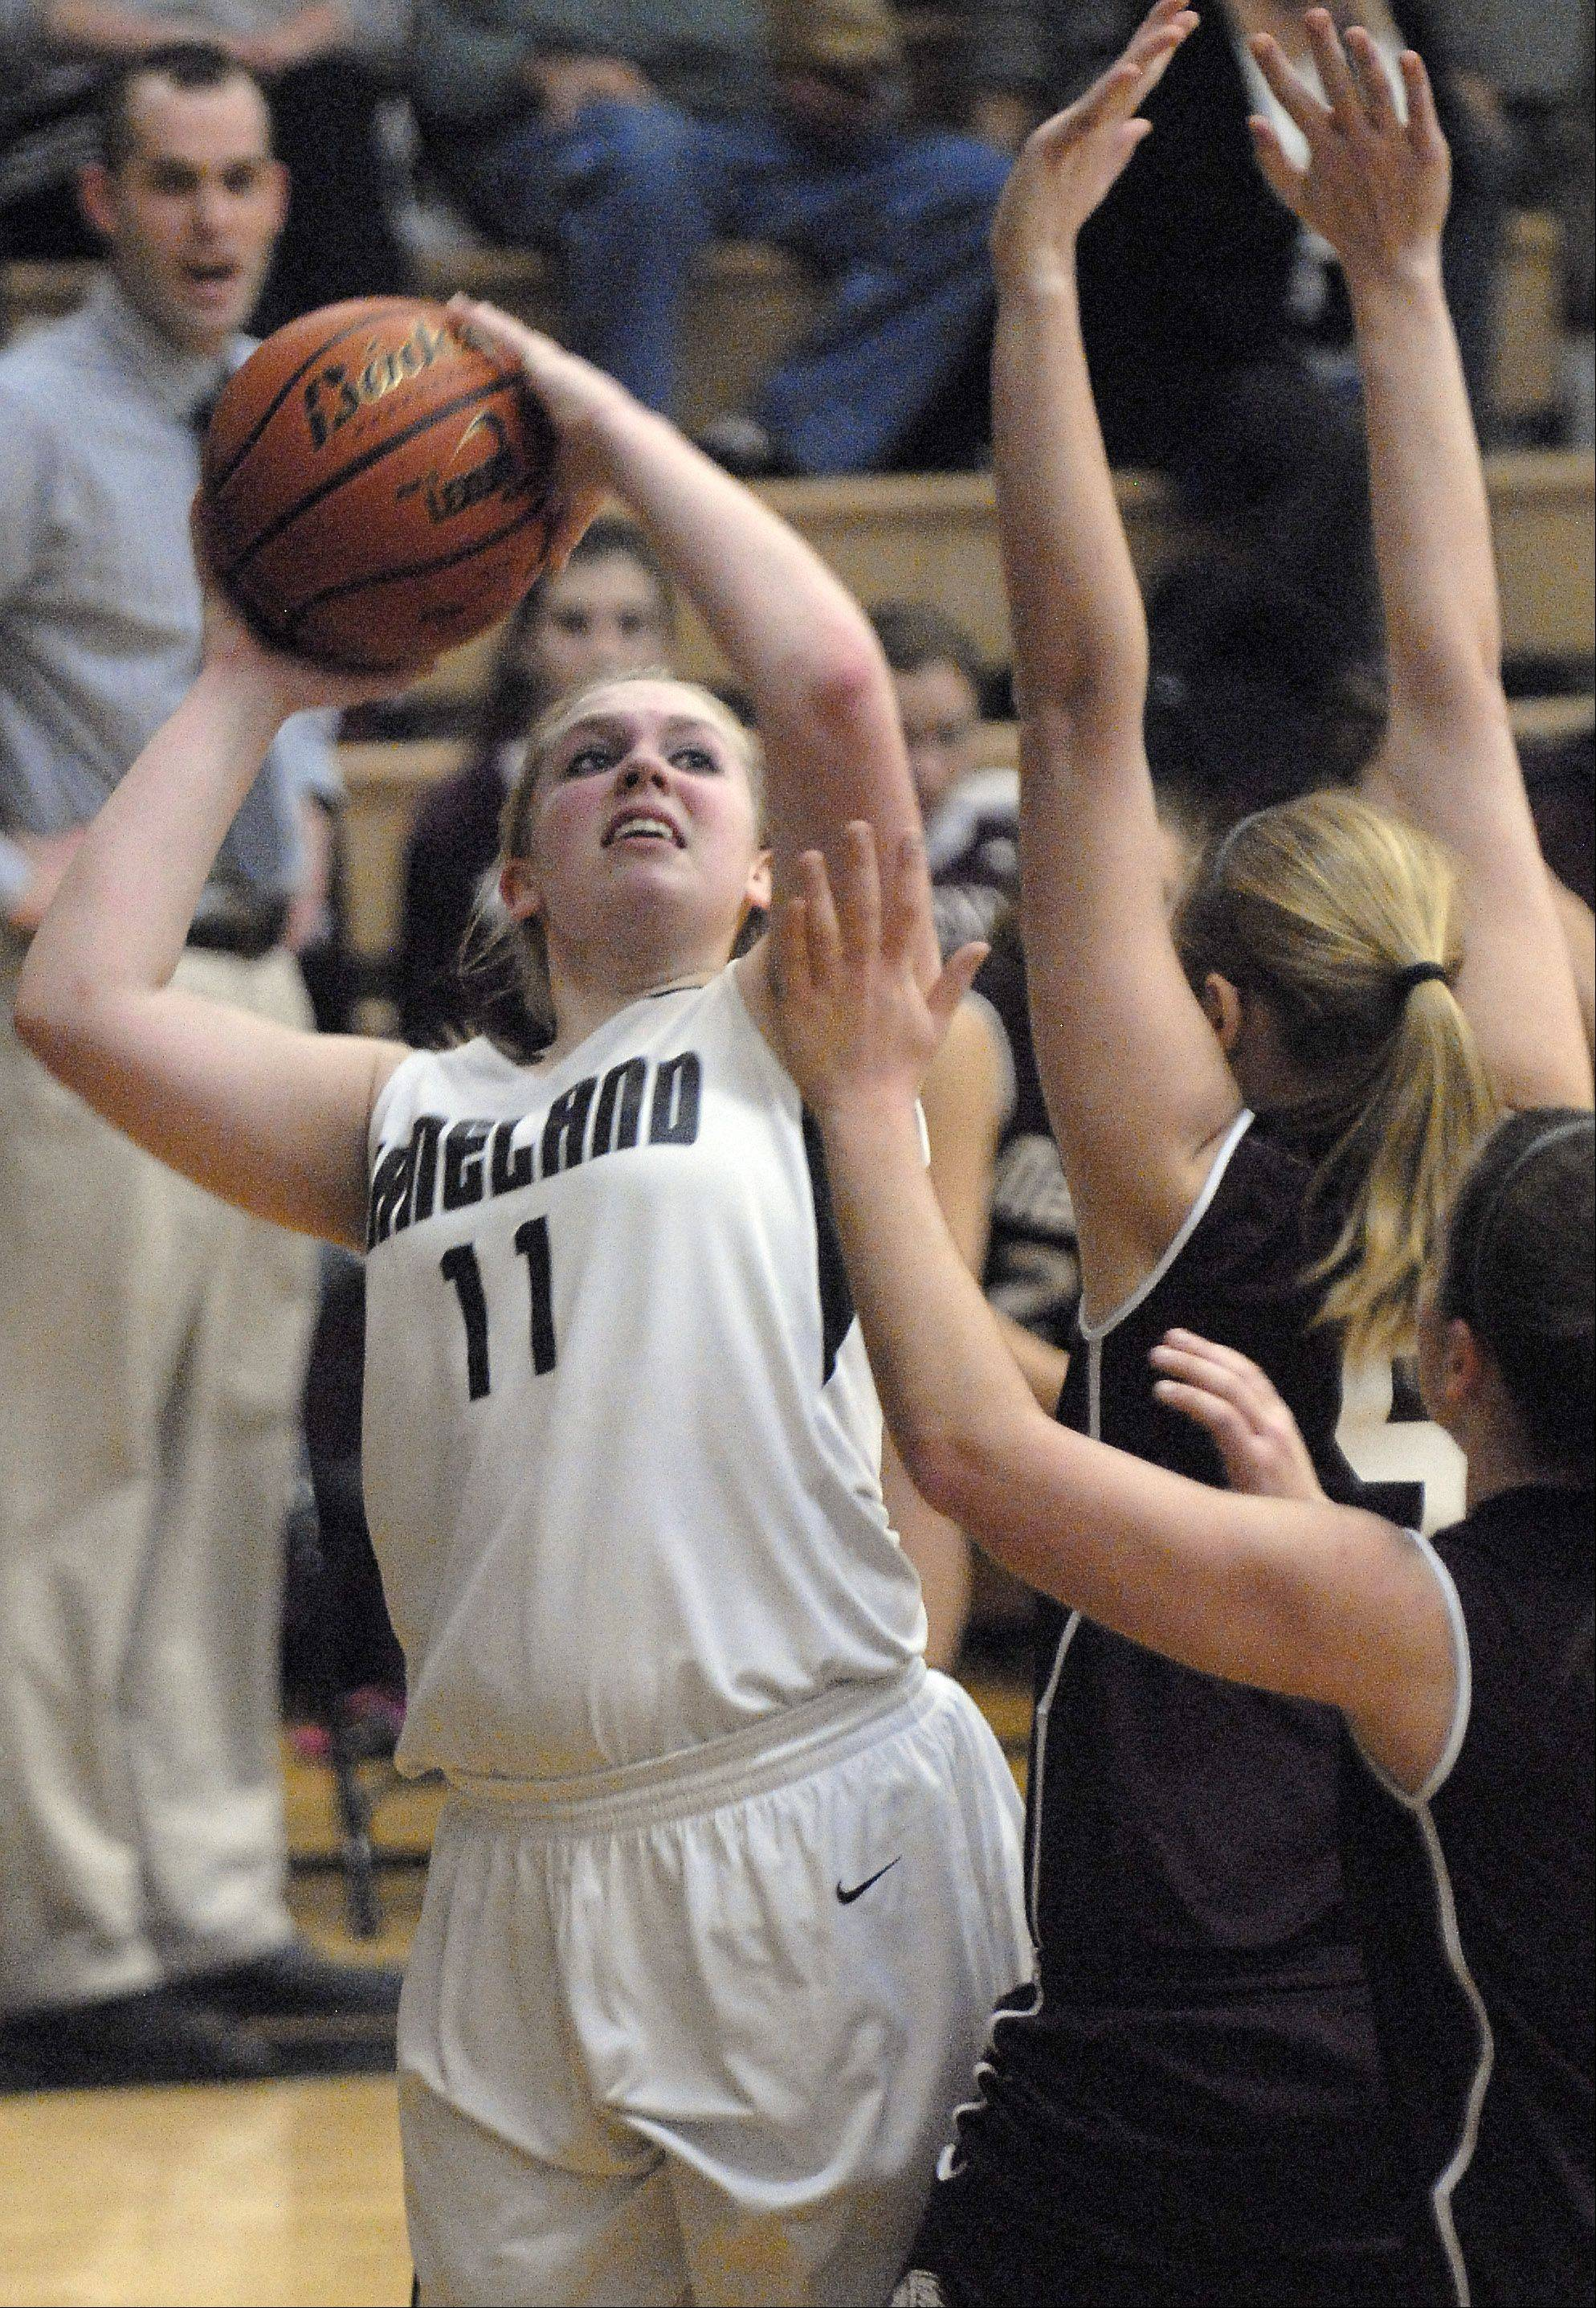 Kaneland's Ashley Post aims for the hoop over Marengo's Courtney Tremmel in the second quarter.